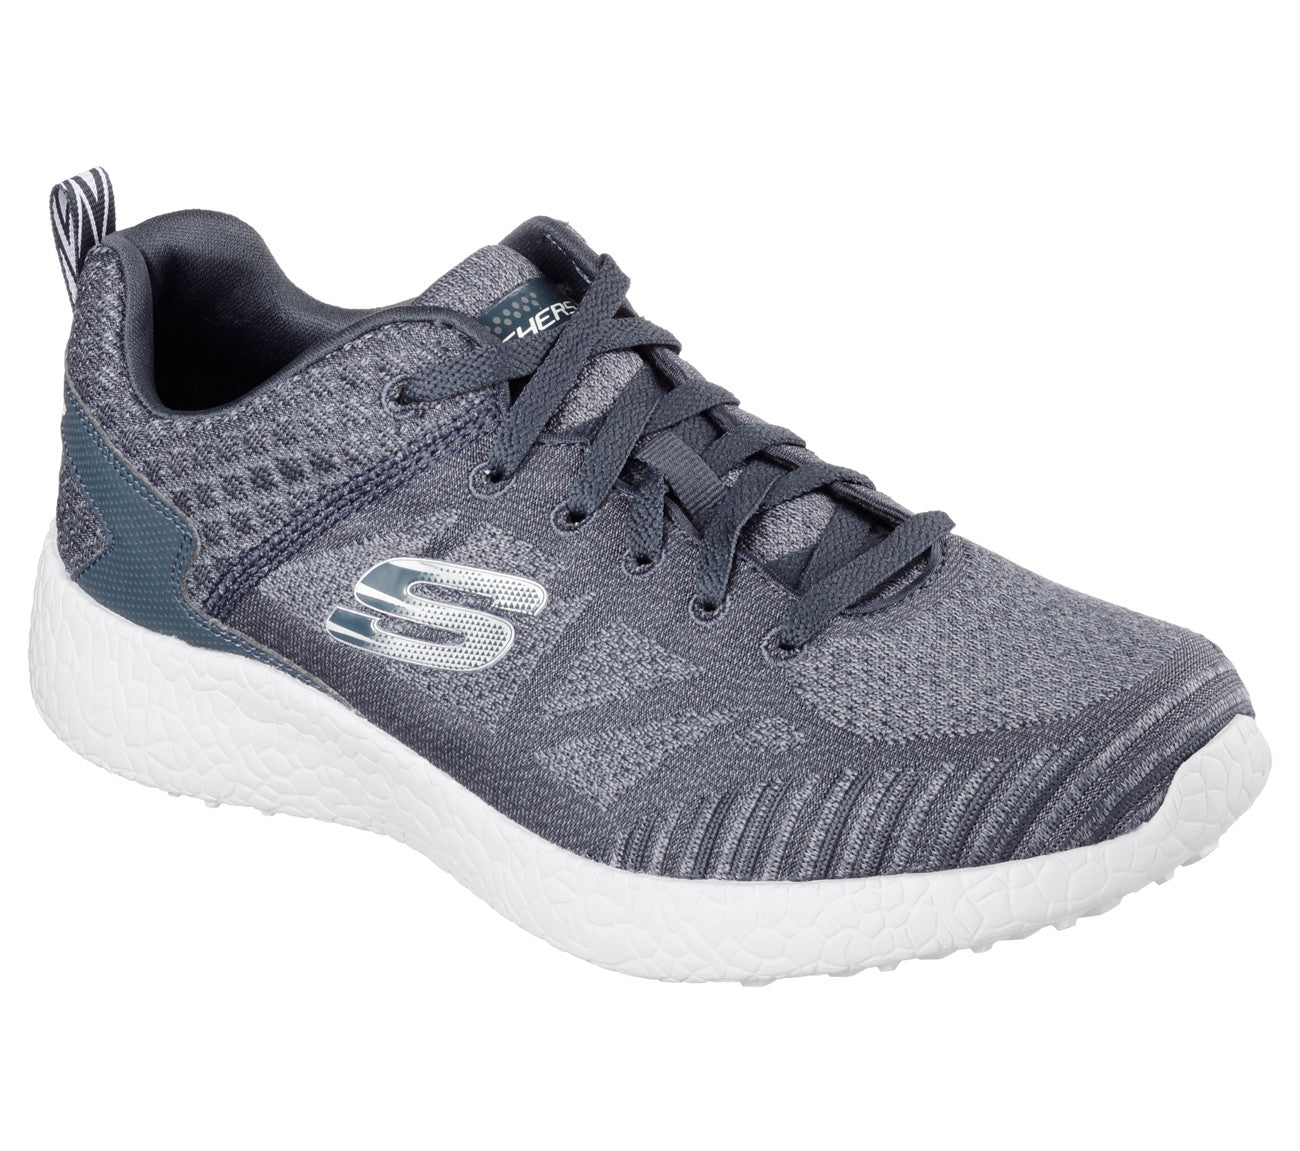 white skechers with memory foam